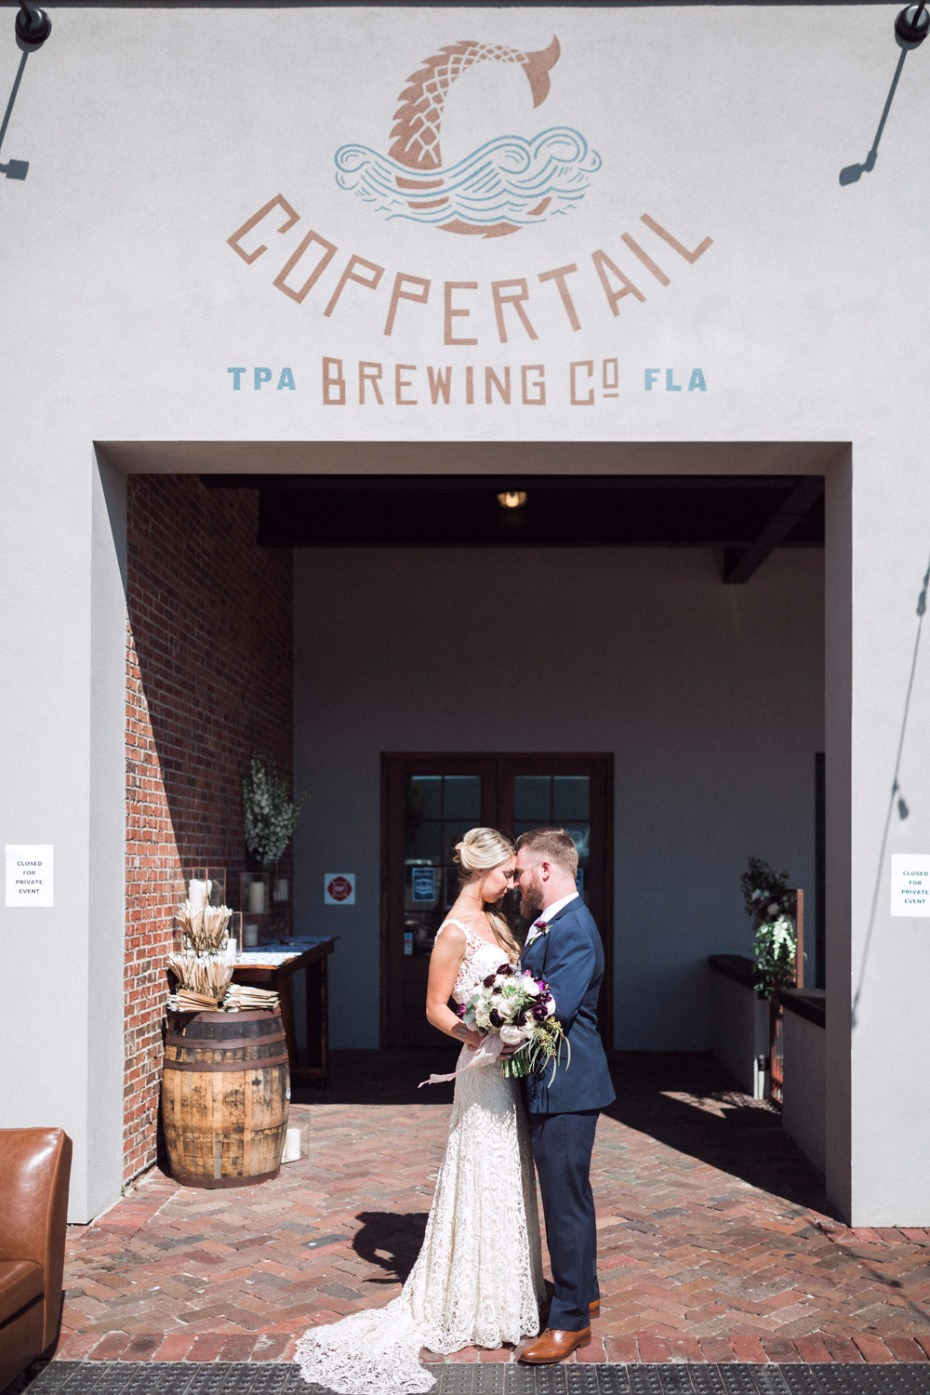 Coppertail brewery wedding